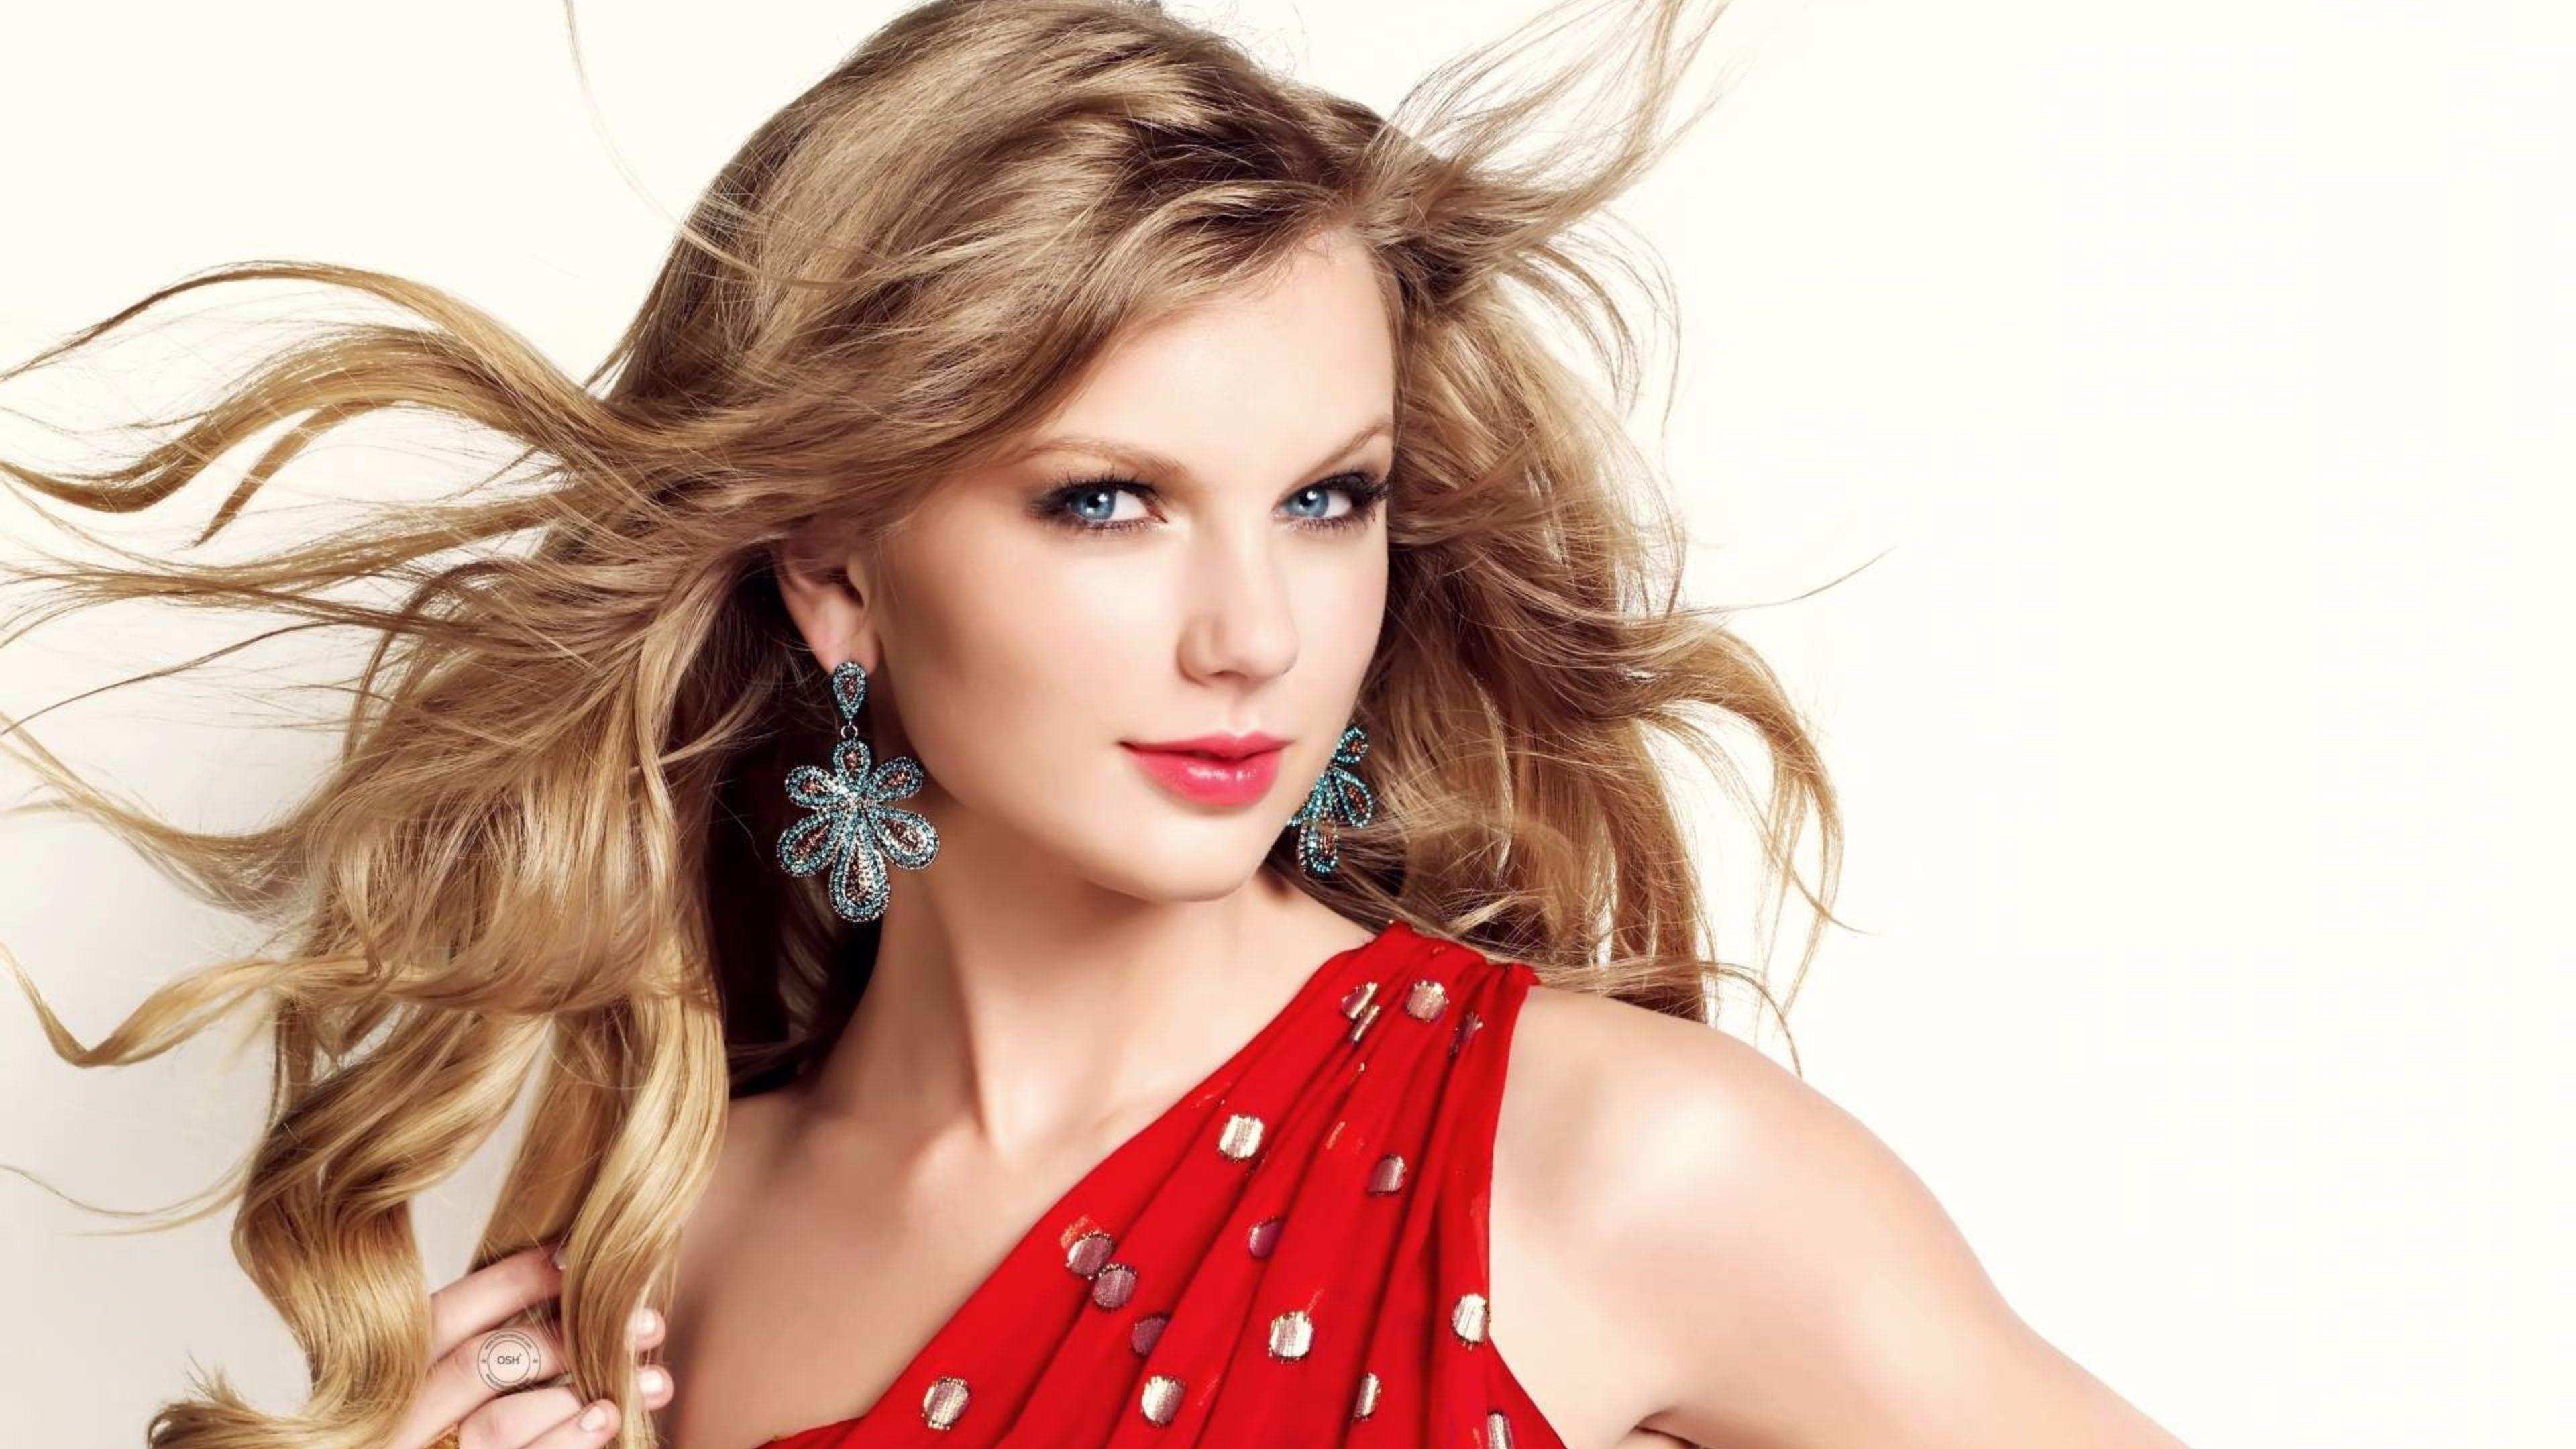 Taylor Swift Beautiful Images: Taylor Swift 2018 Wallpapers